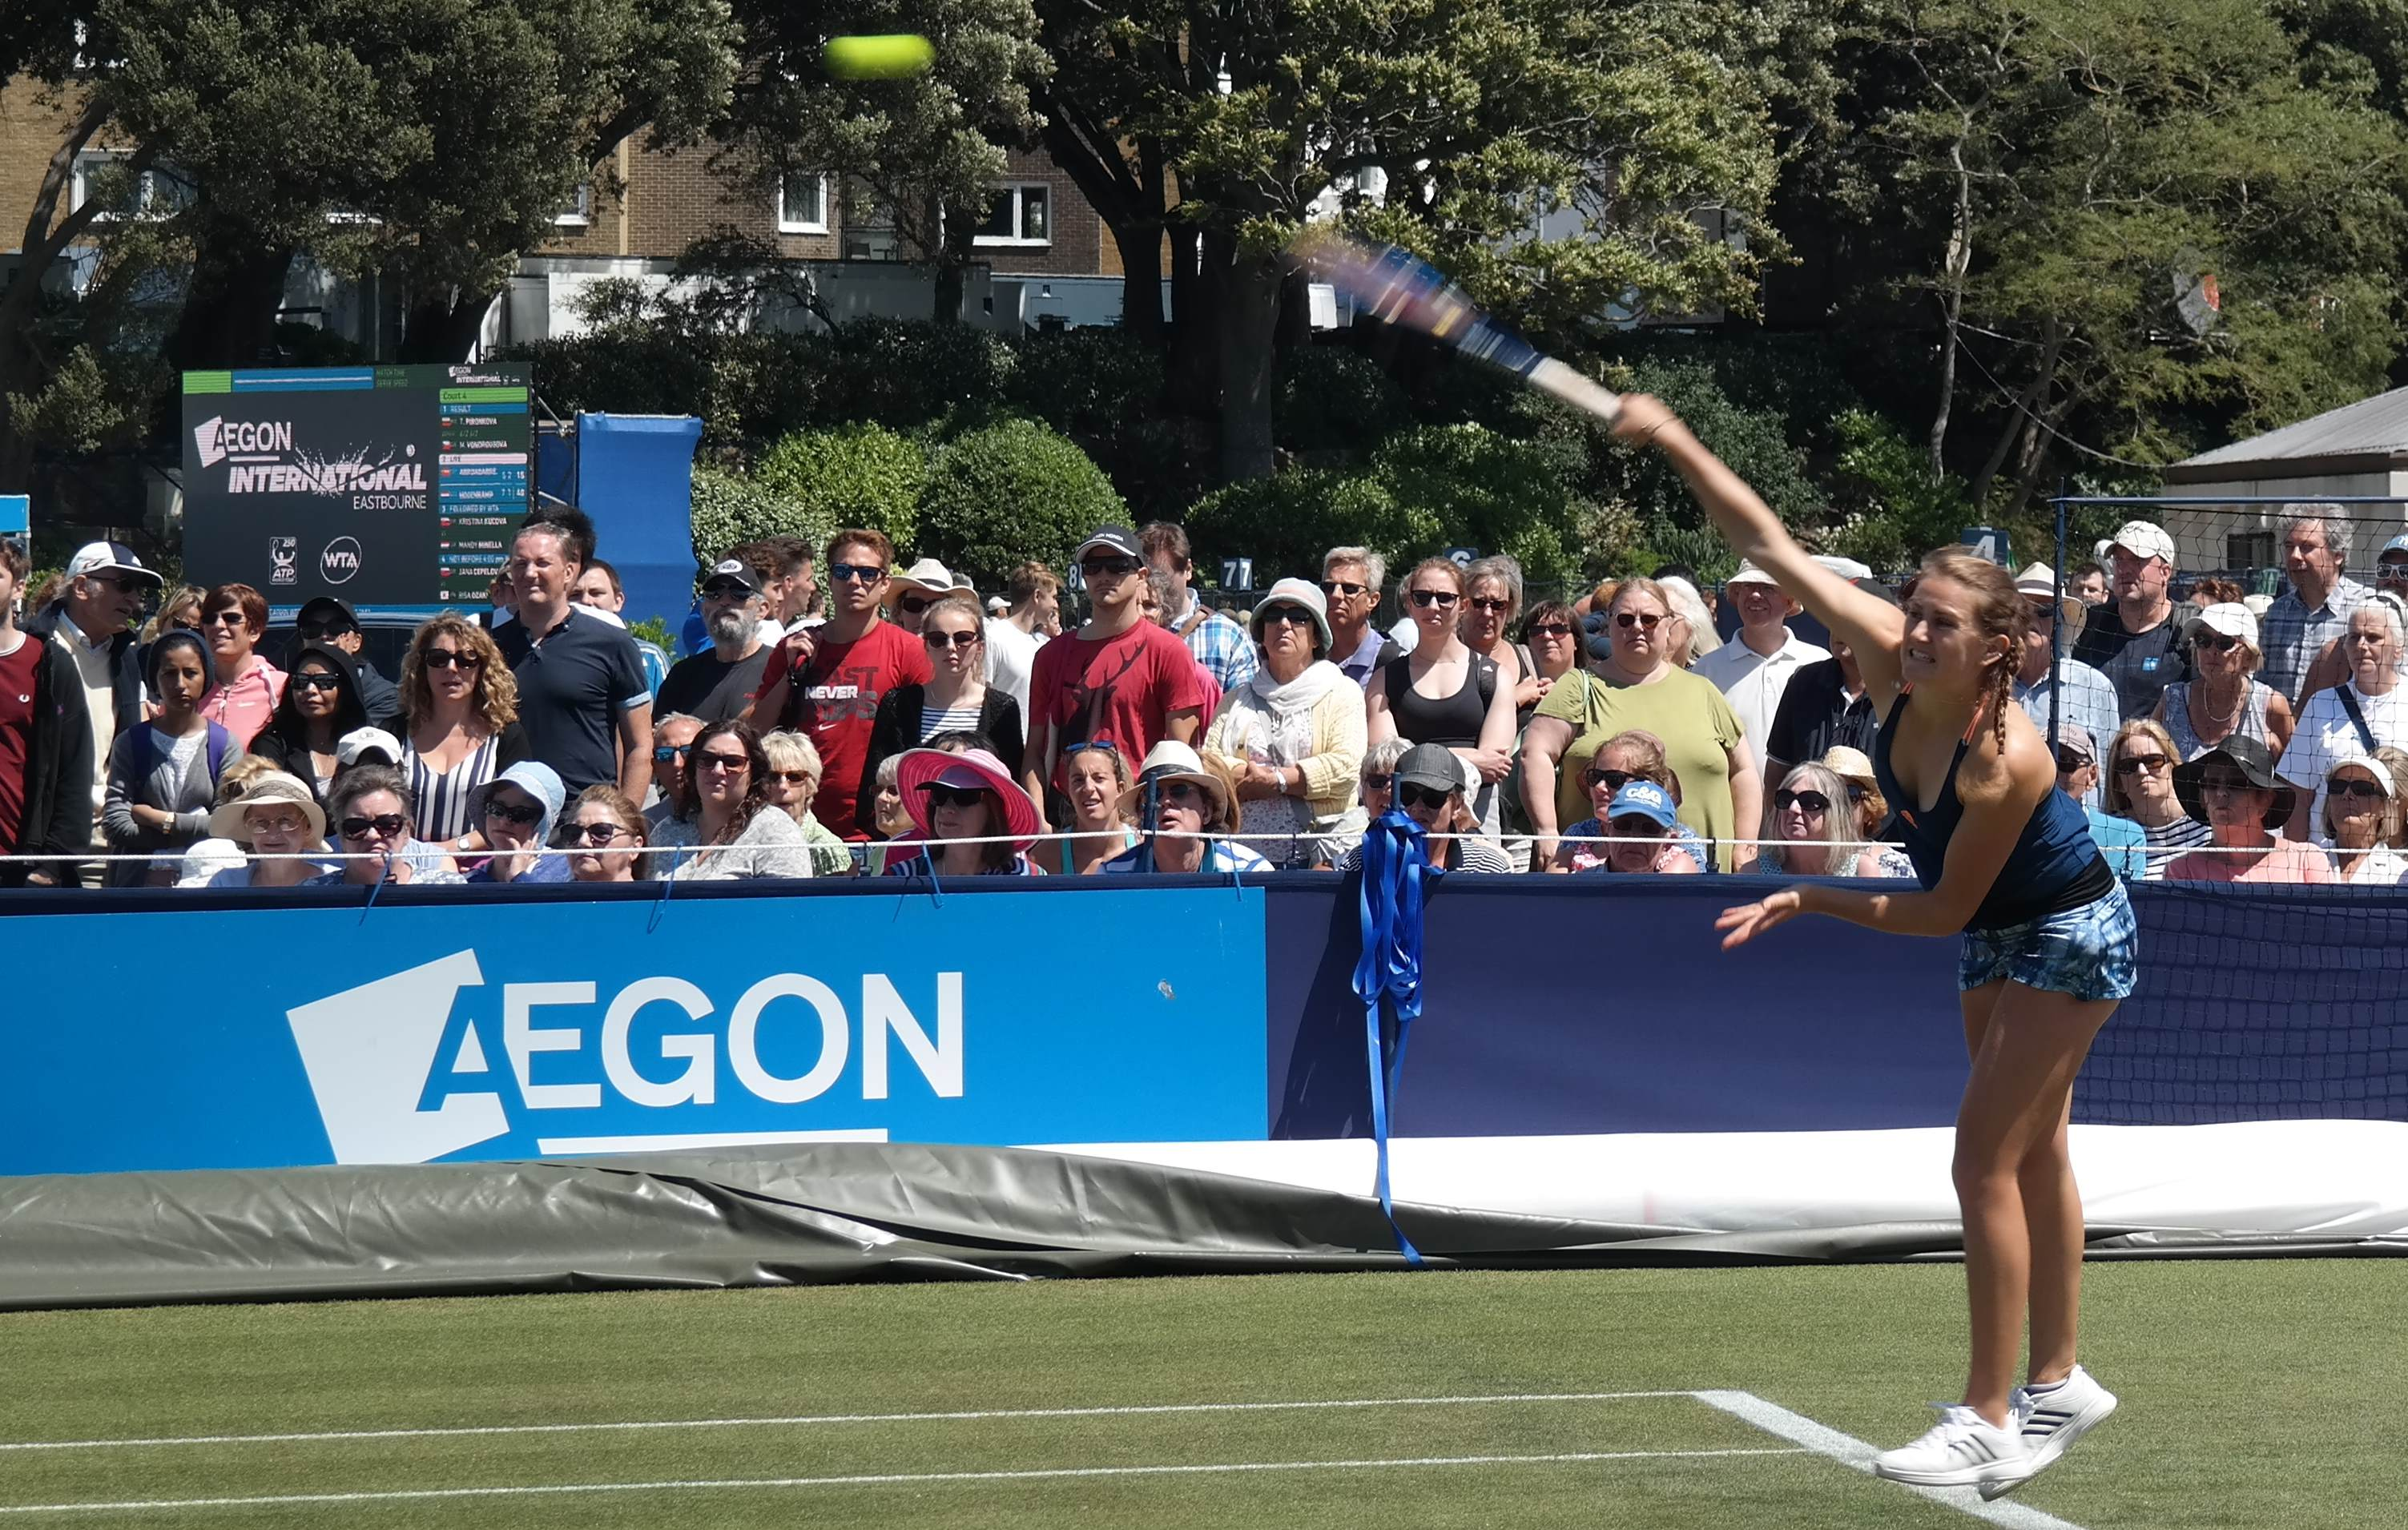 Katy Dunne serving at Aegon International Eastbourne 2017